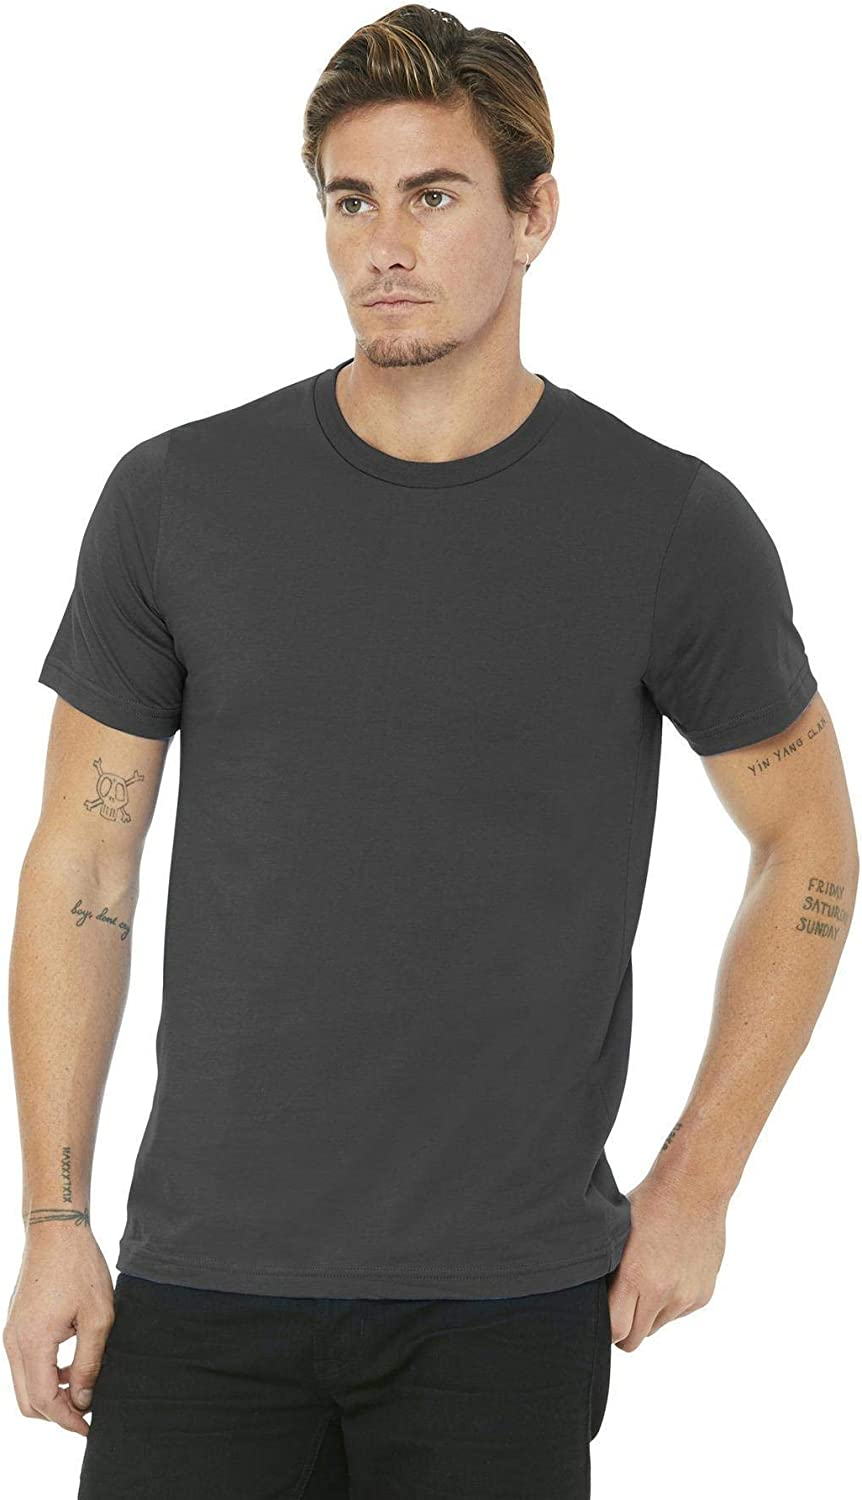 3001U Bella + Canvas Unisex Made in the USA Jersey Short-Sleeve T-Shirt